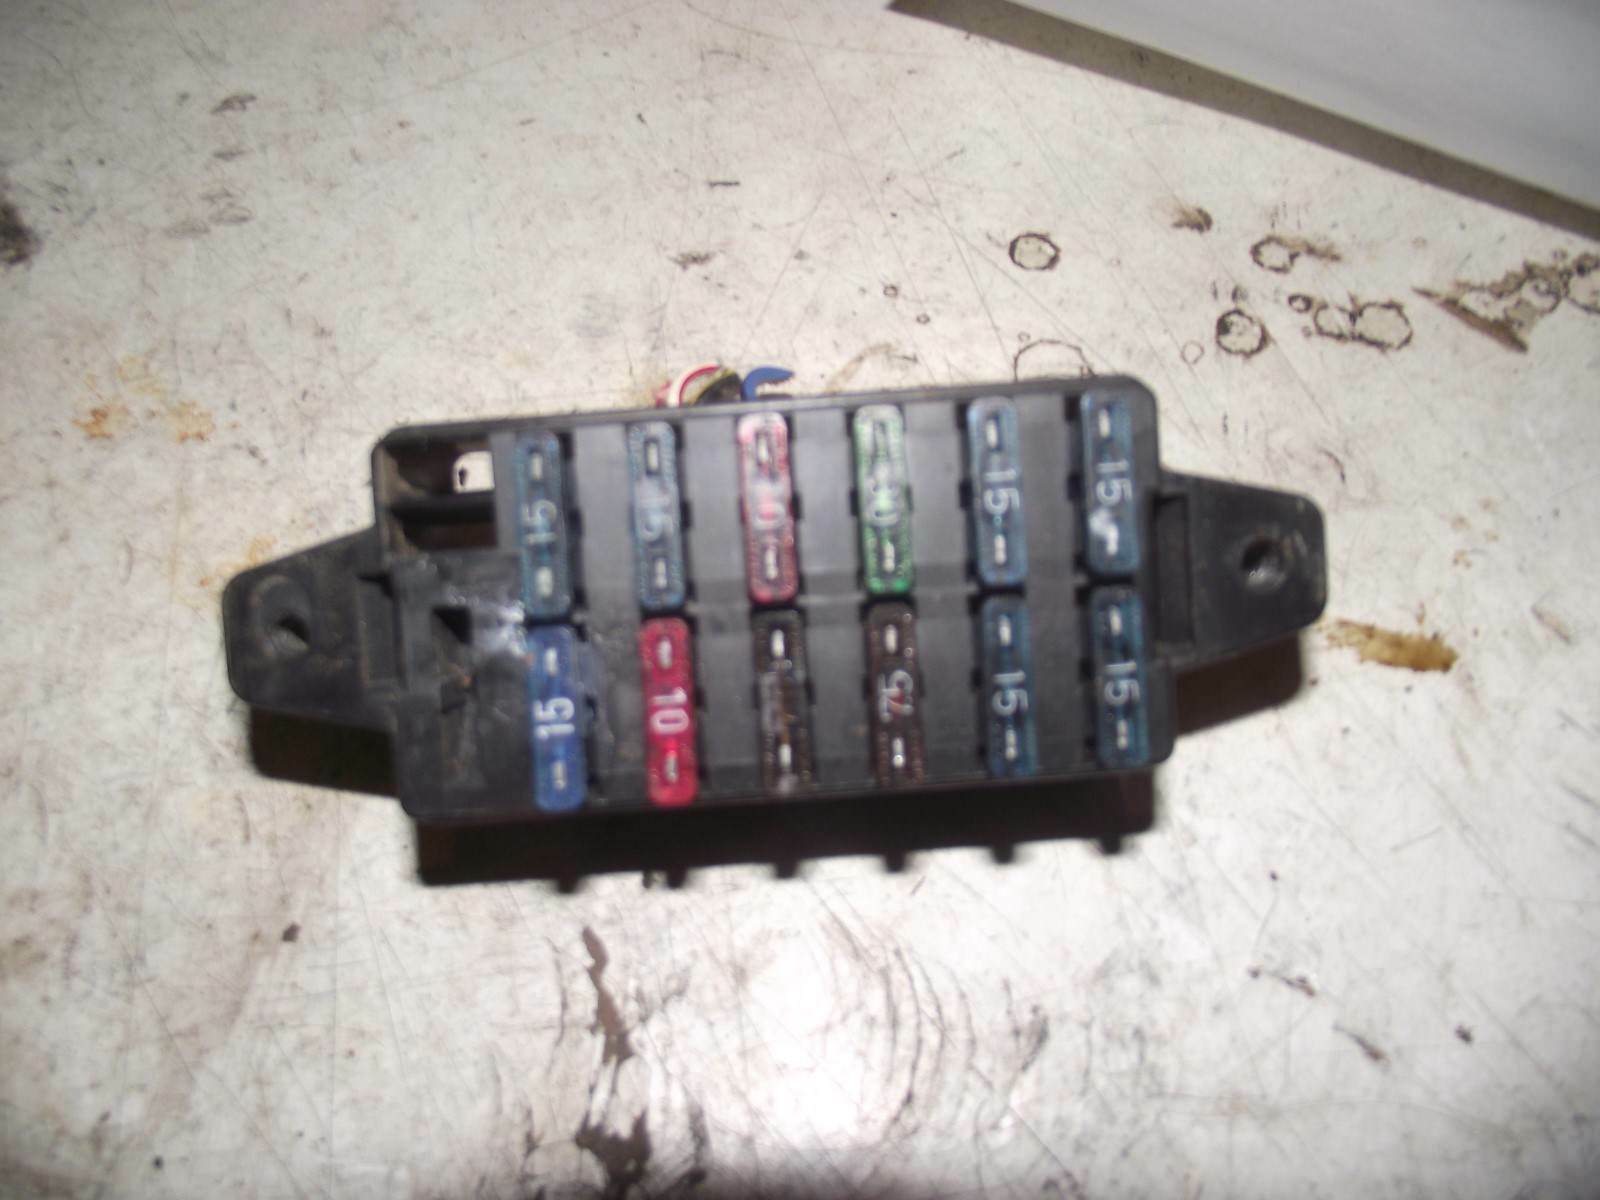 Daihatsu Fourtrak 2.8 Diesel 1994 Fuse Box Medium 1 of 1Only 1 available ...